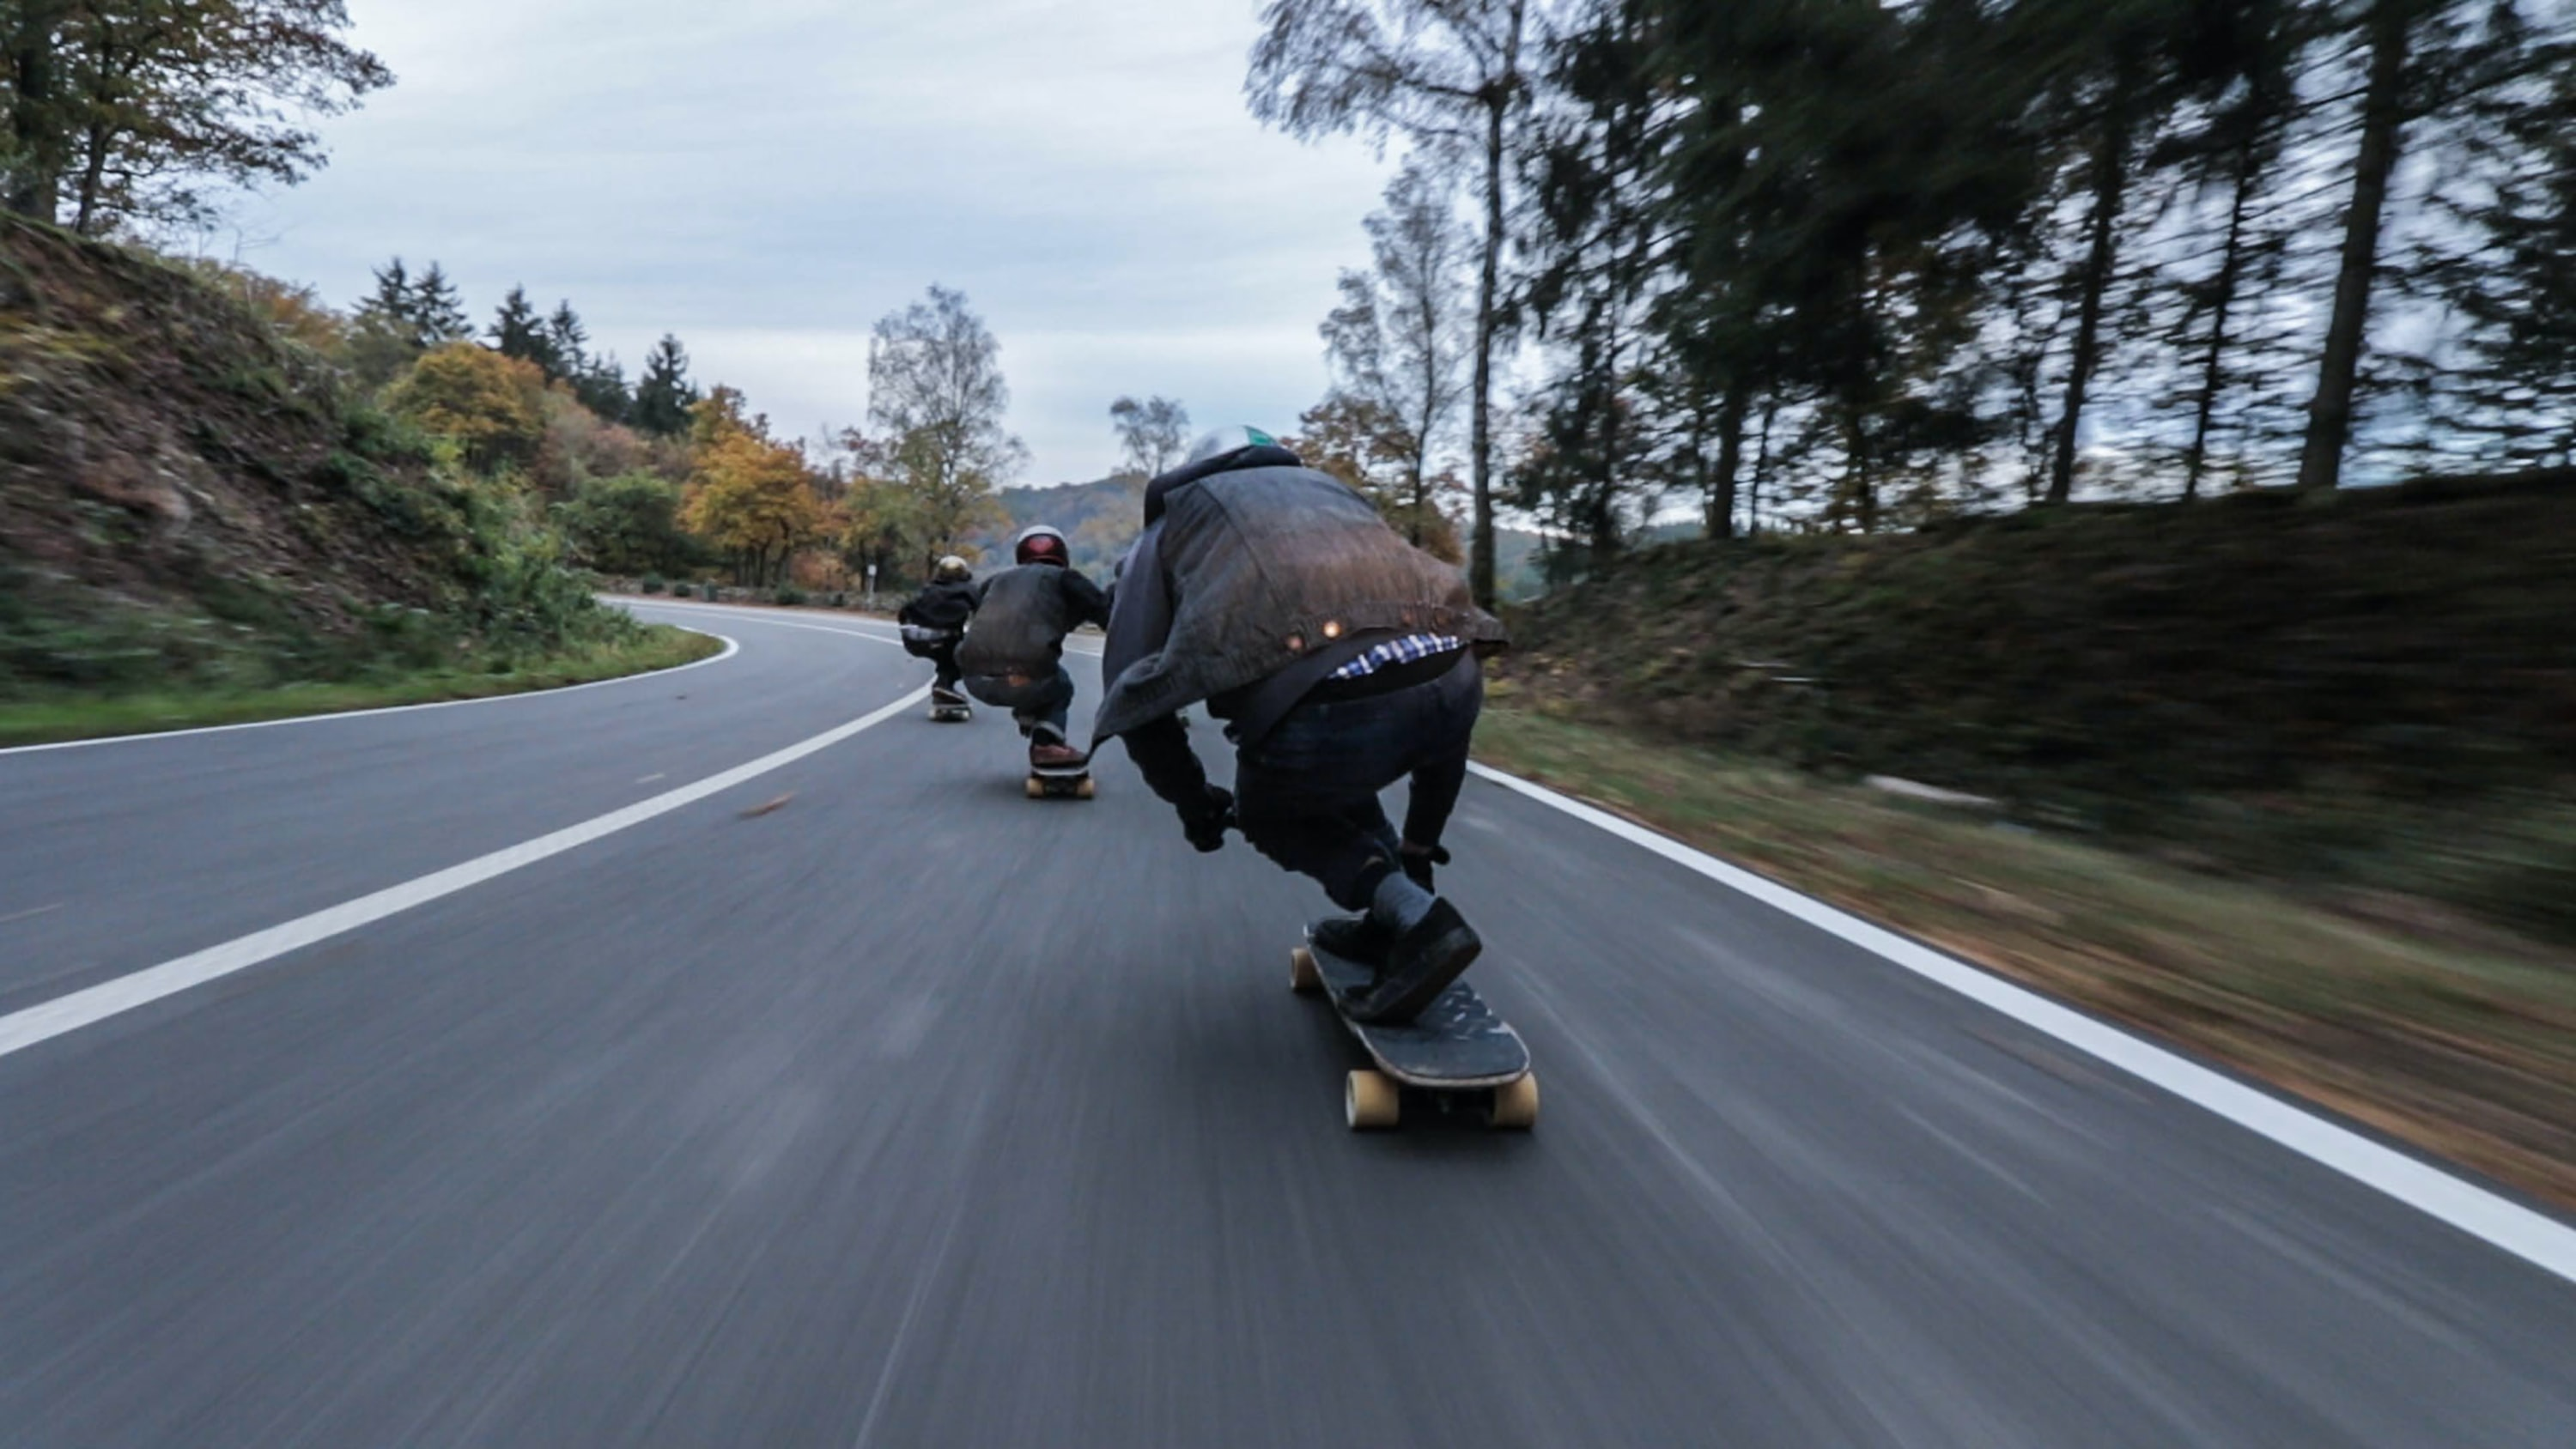 three person riding skateboards downhill during daytime